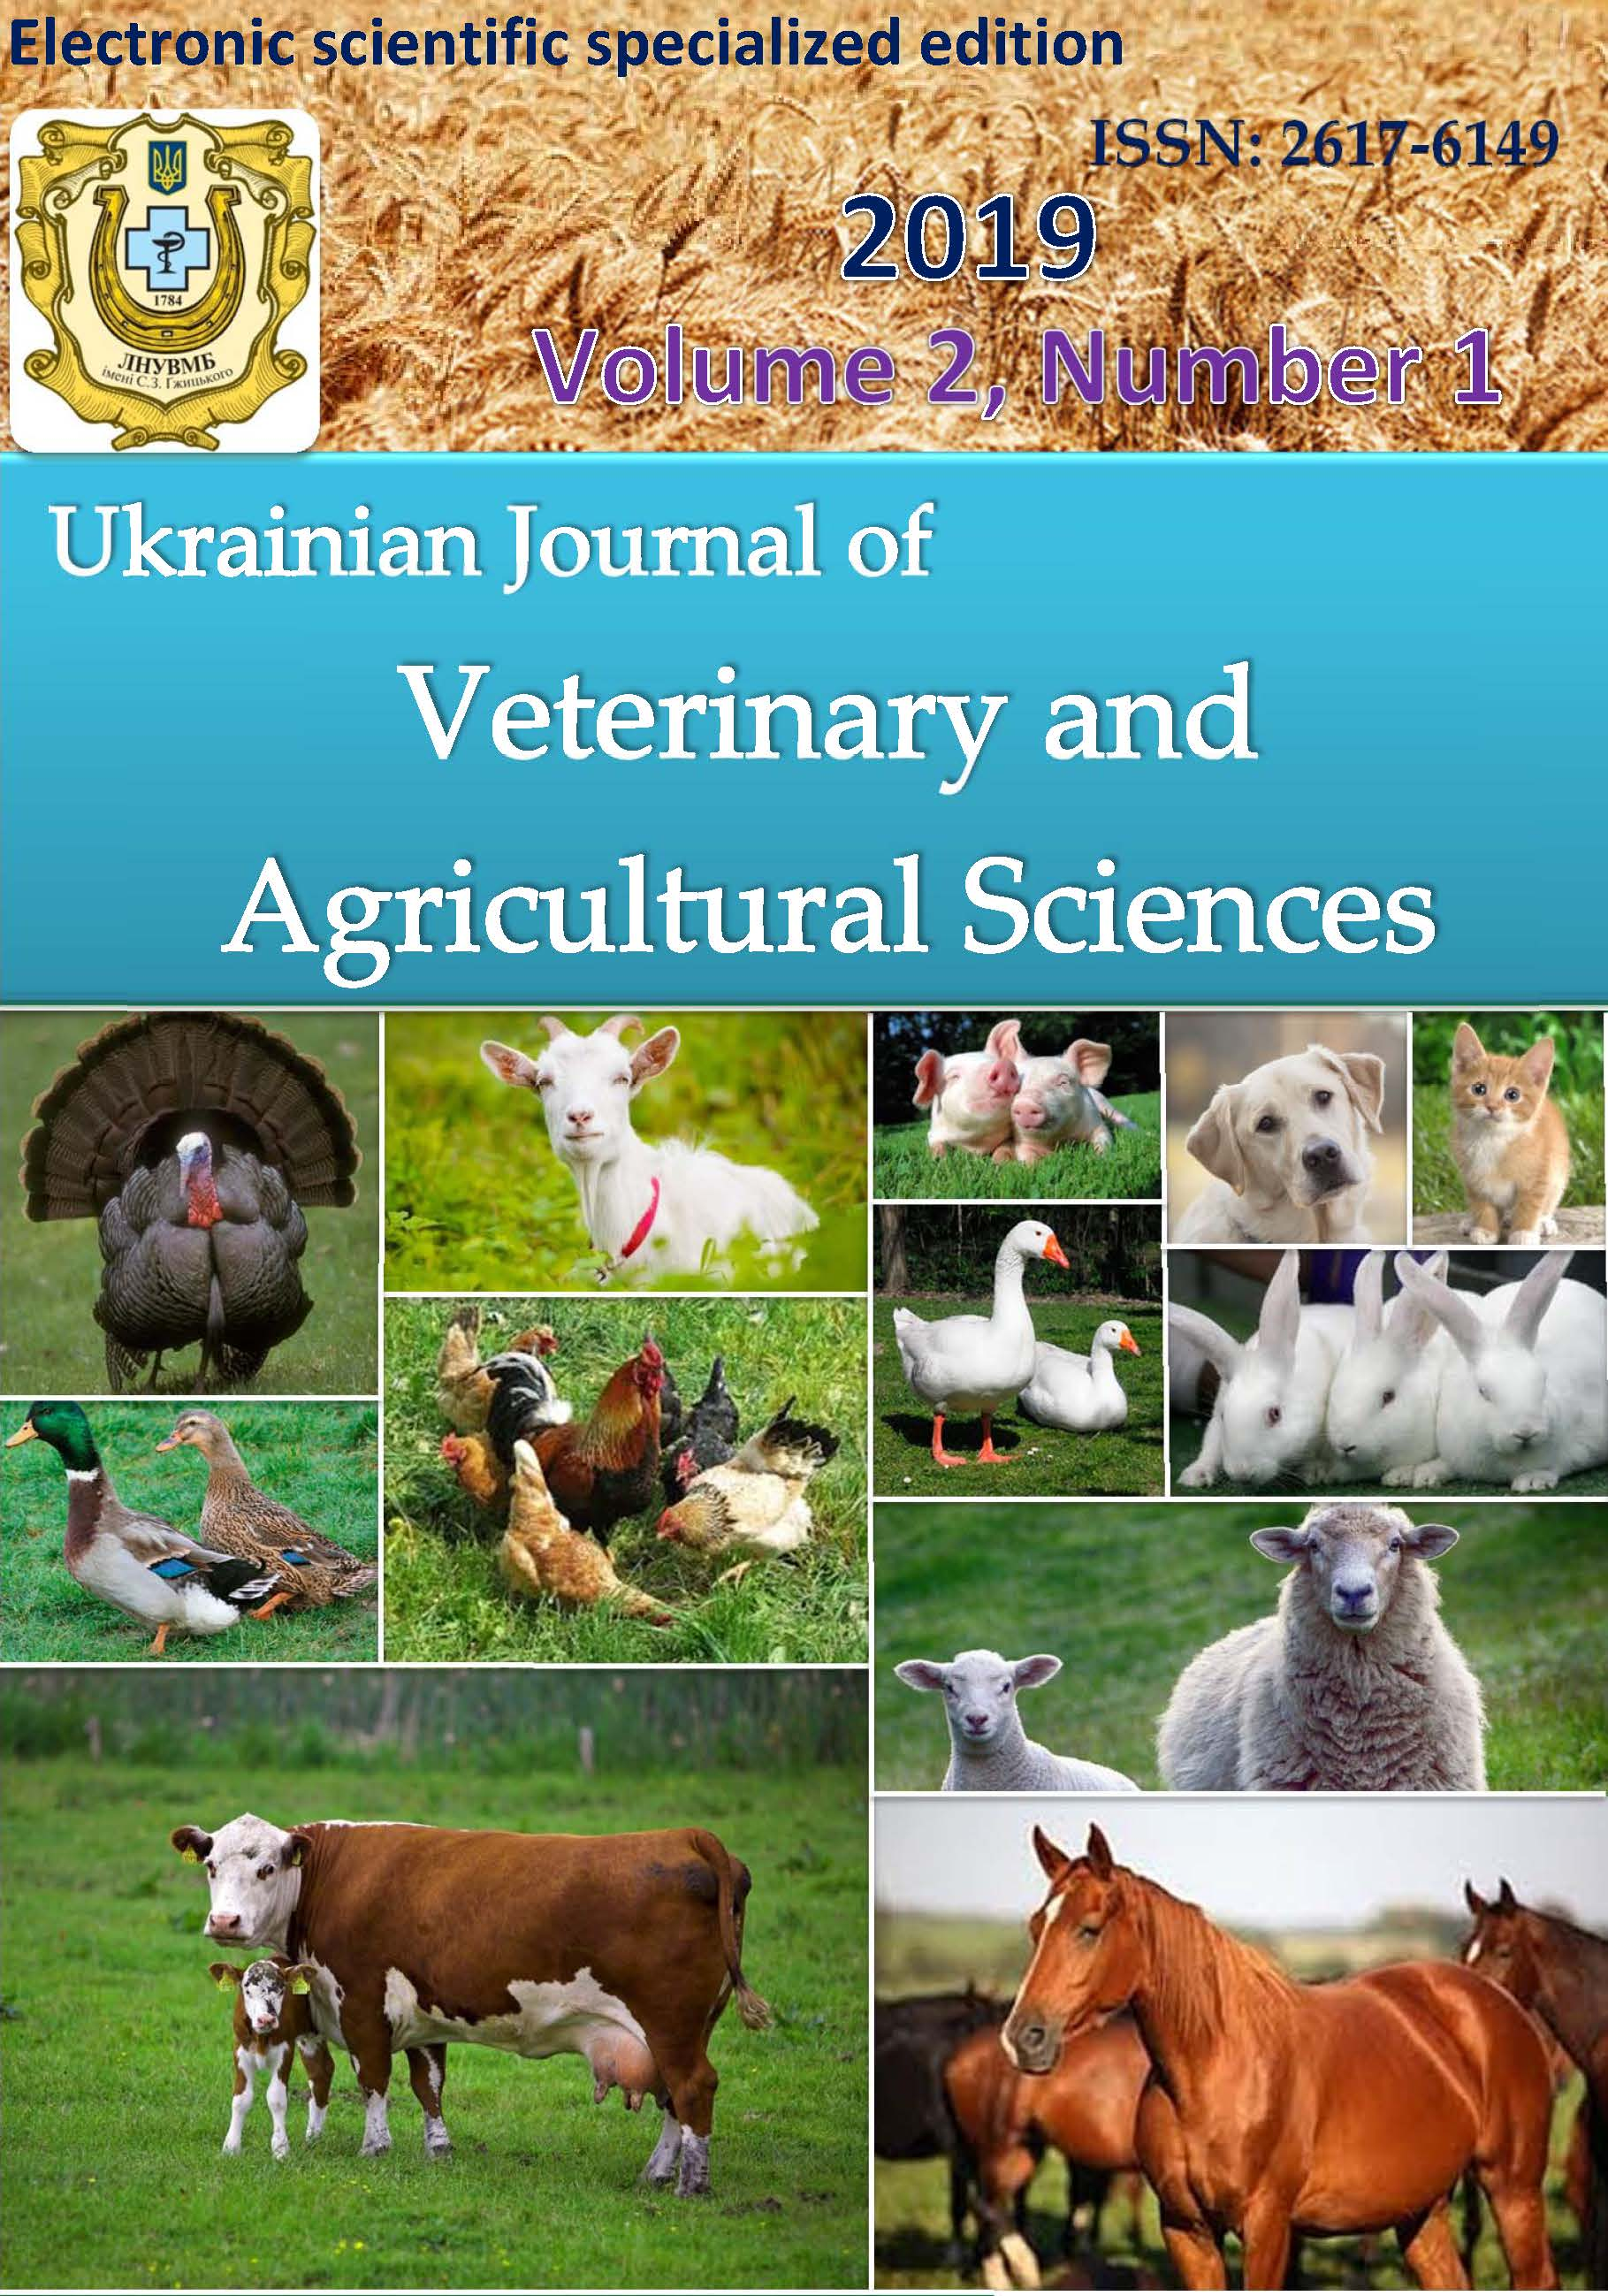 Archives | Ukrainian Journal of Veterinary and Agricultural Sciences